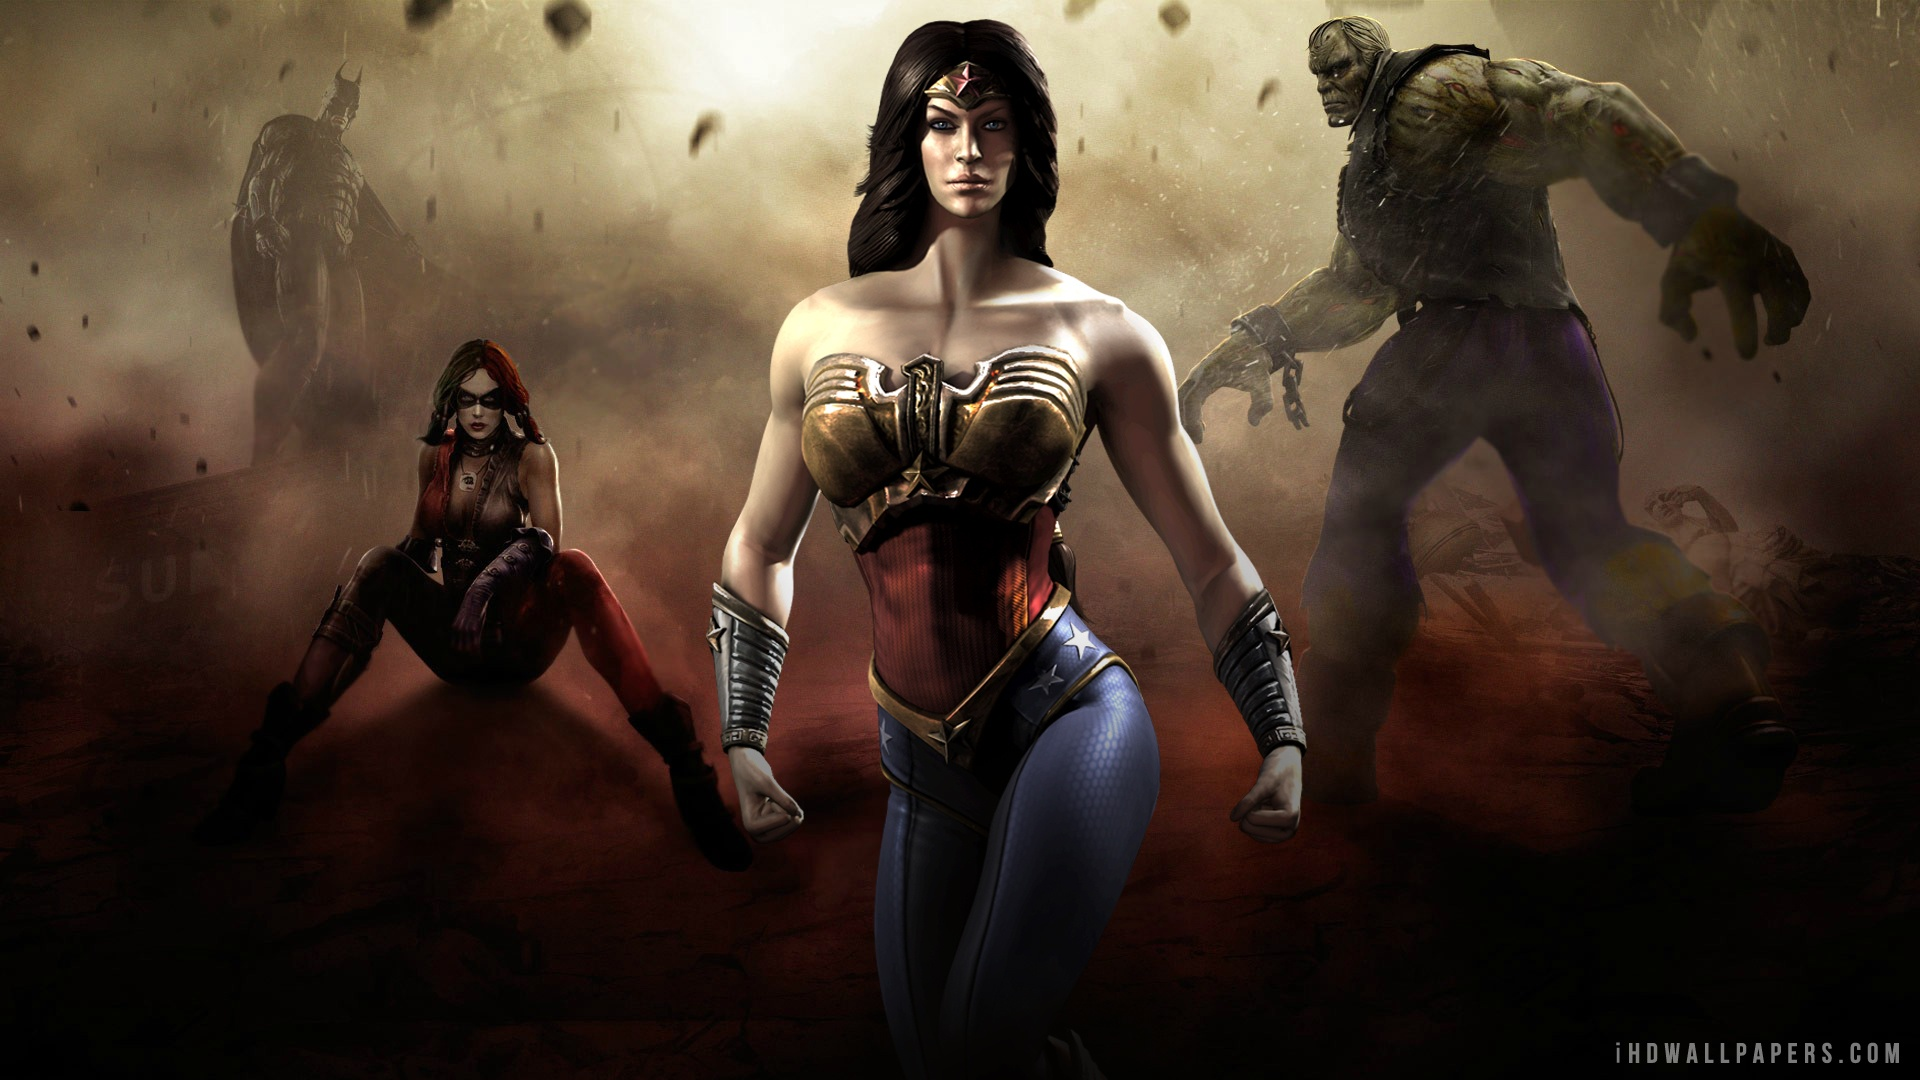 Wallpapers hd wonder woman naked xxx movie